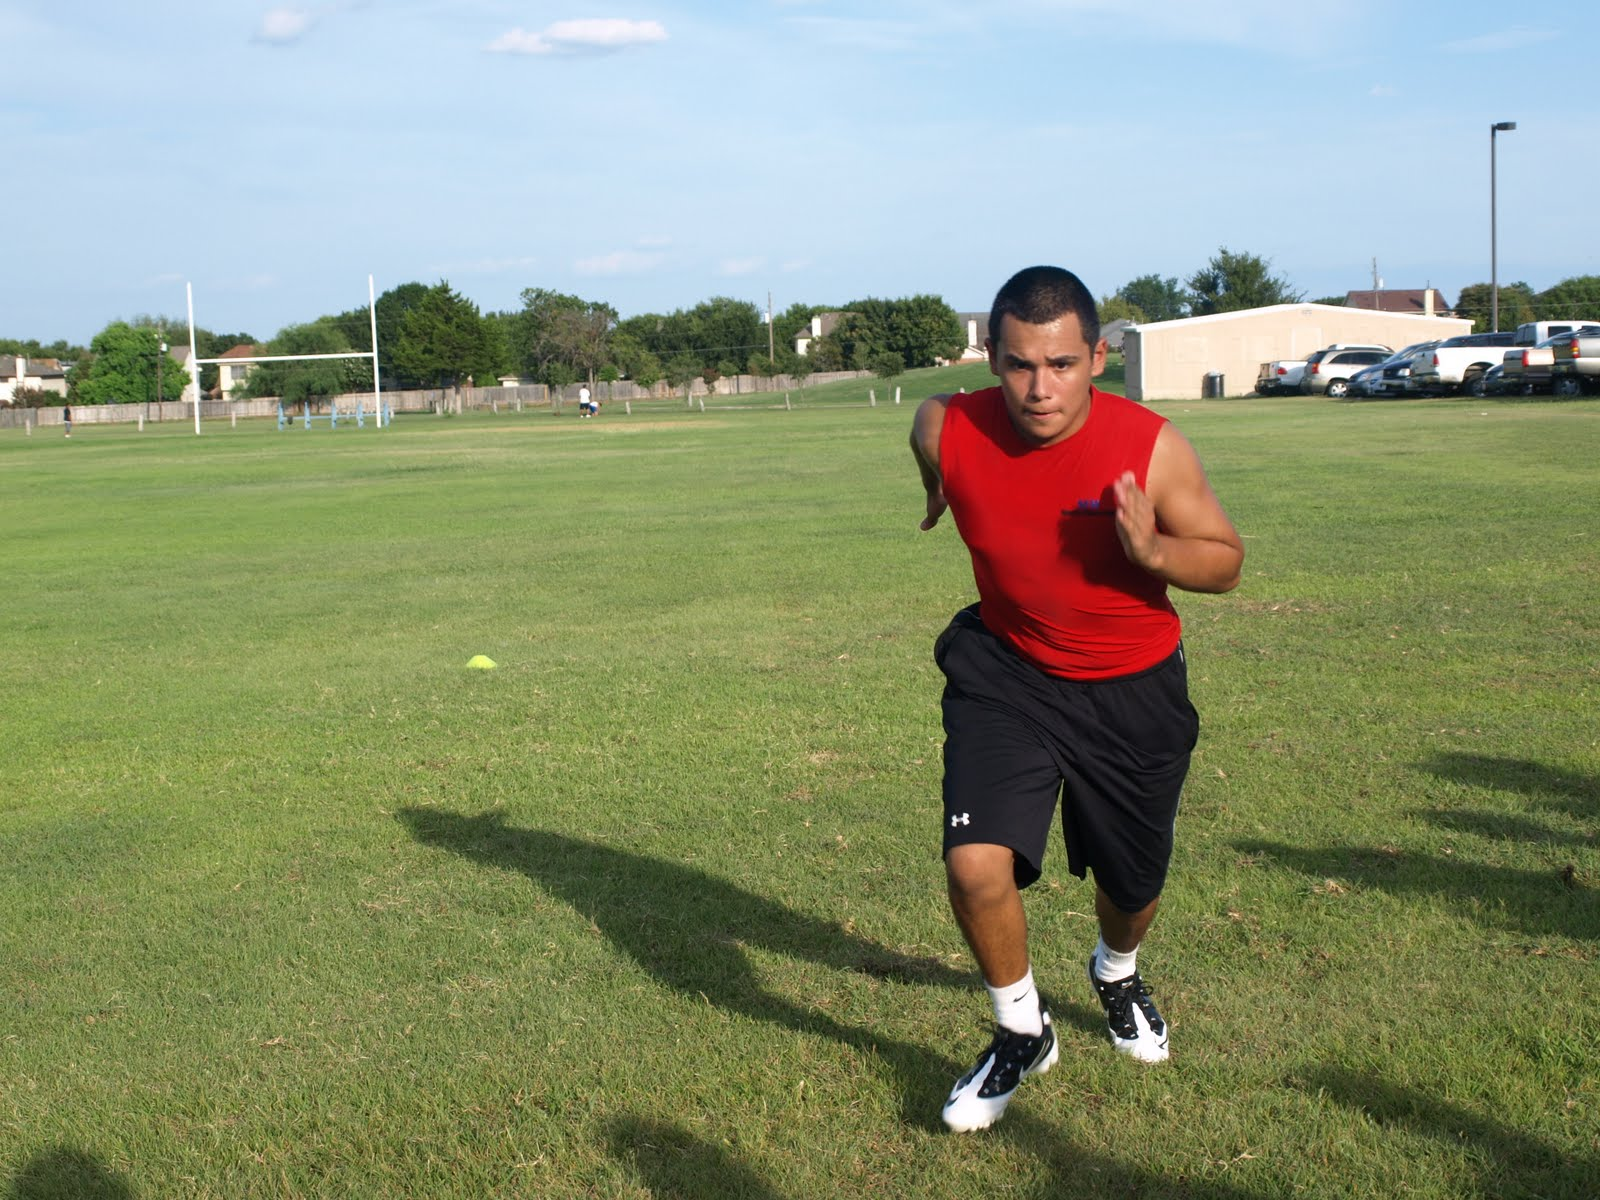 Top 2 Shuttle Run Exercises to Burn More Fat | My Fitness ...